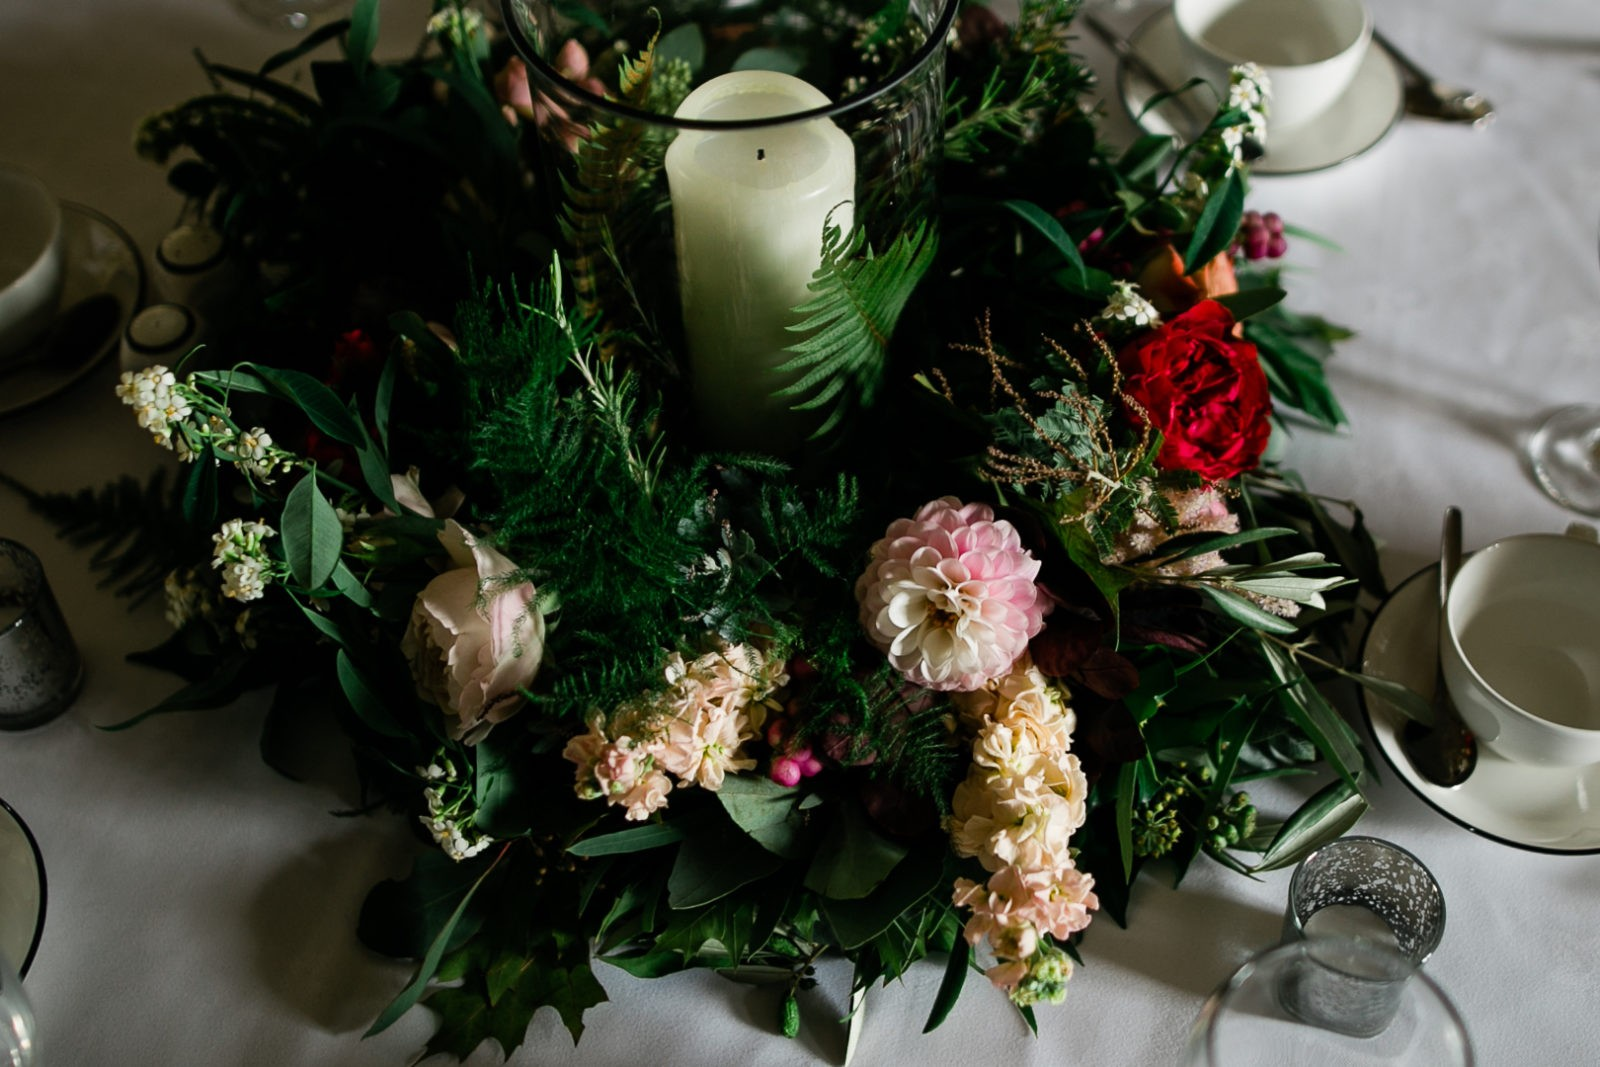 Narcissus Flowers - Wild and Beautiful - Burgundy Red Pink and Green Wedding Decor at My Beauty Bunny's Scotland Wedding